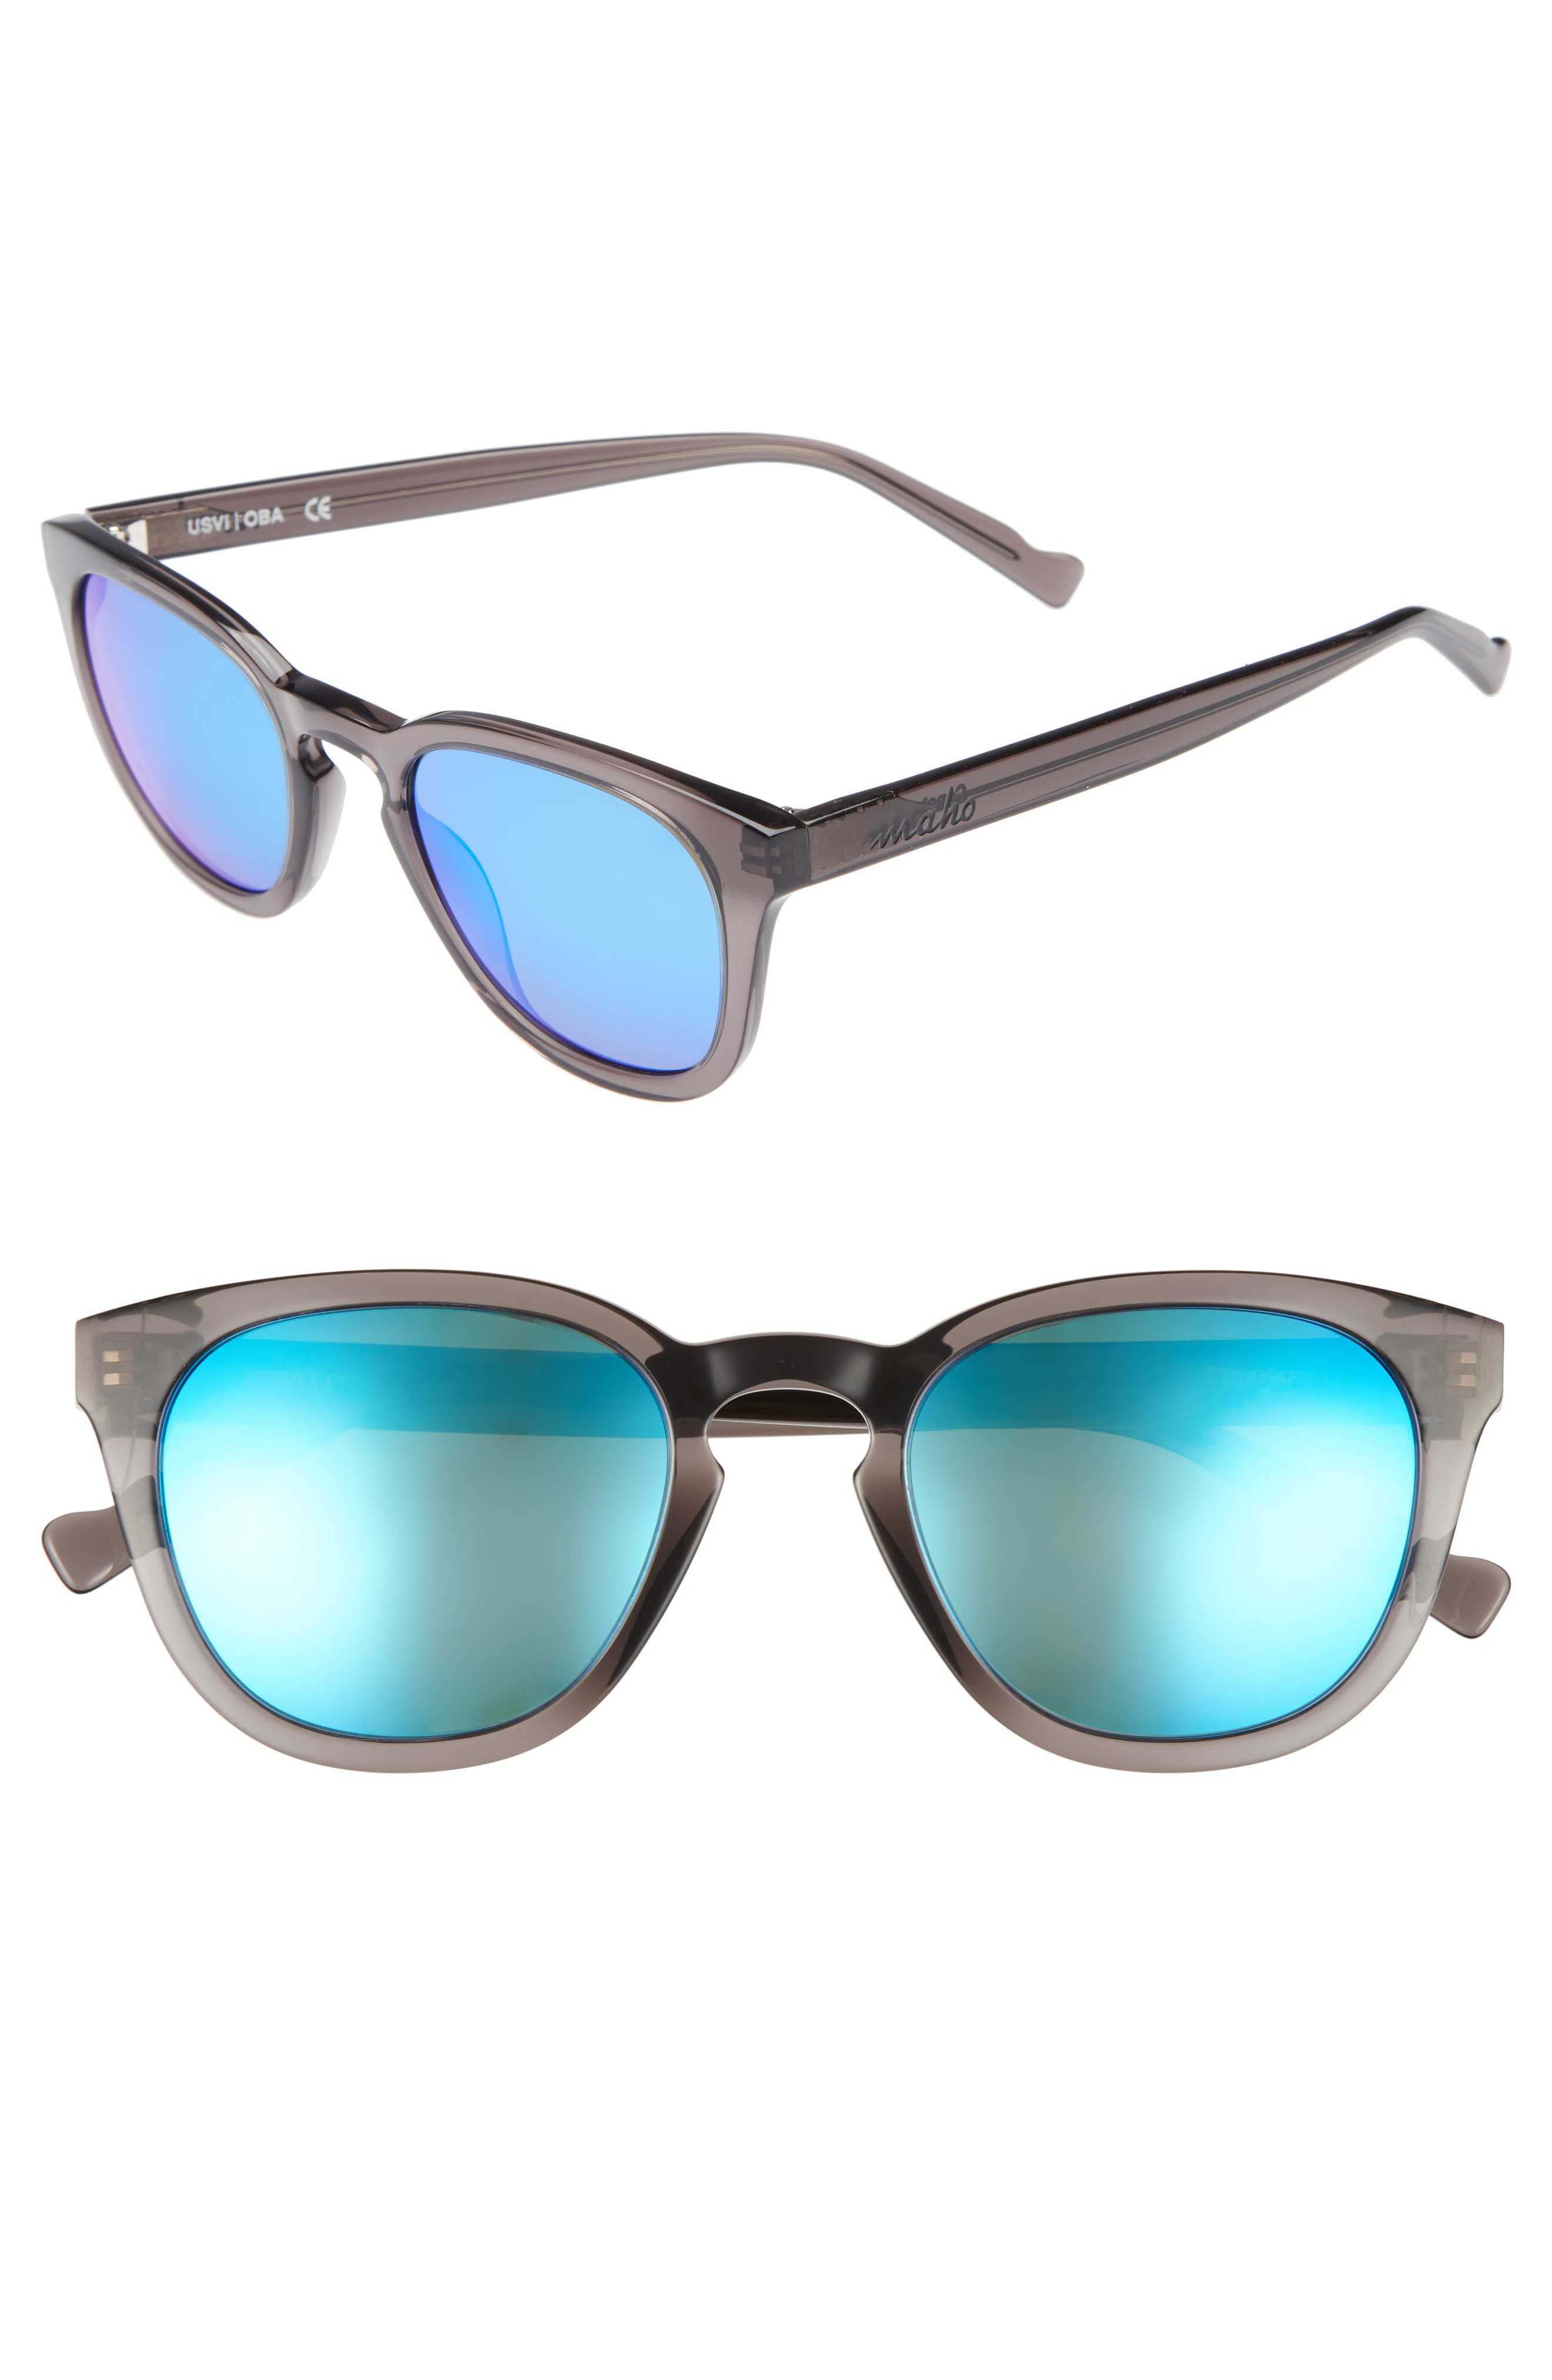 Capetown 50mm Polarized Round Sunglasses,                             Main thumbnail 1, color,                             SLATE